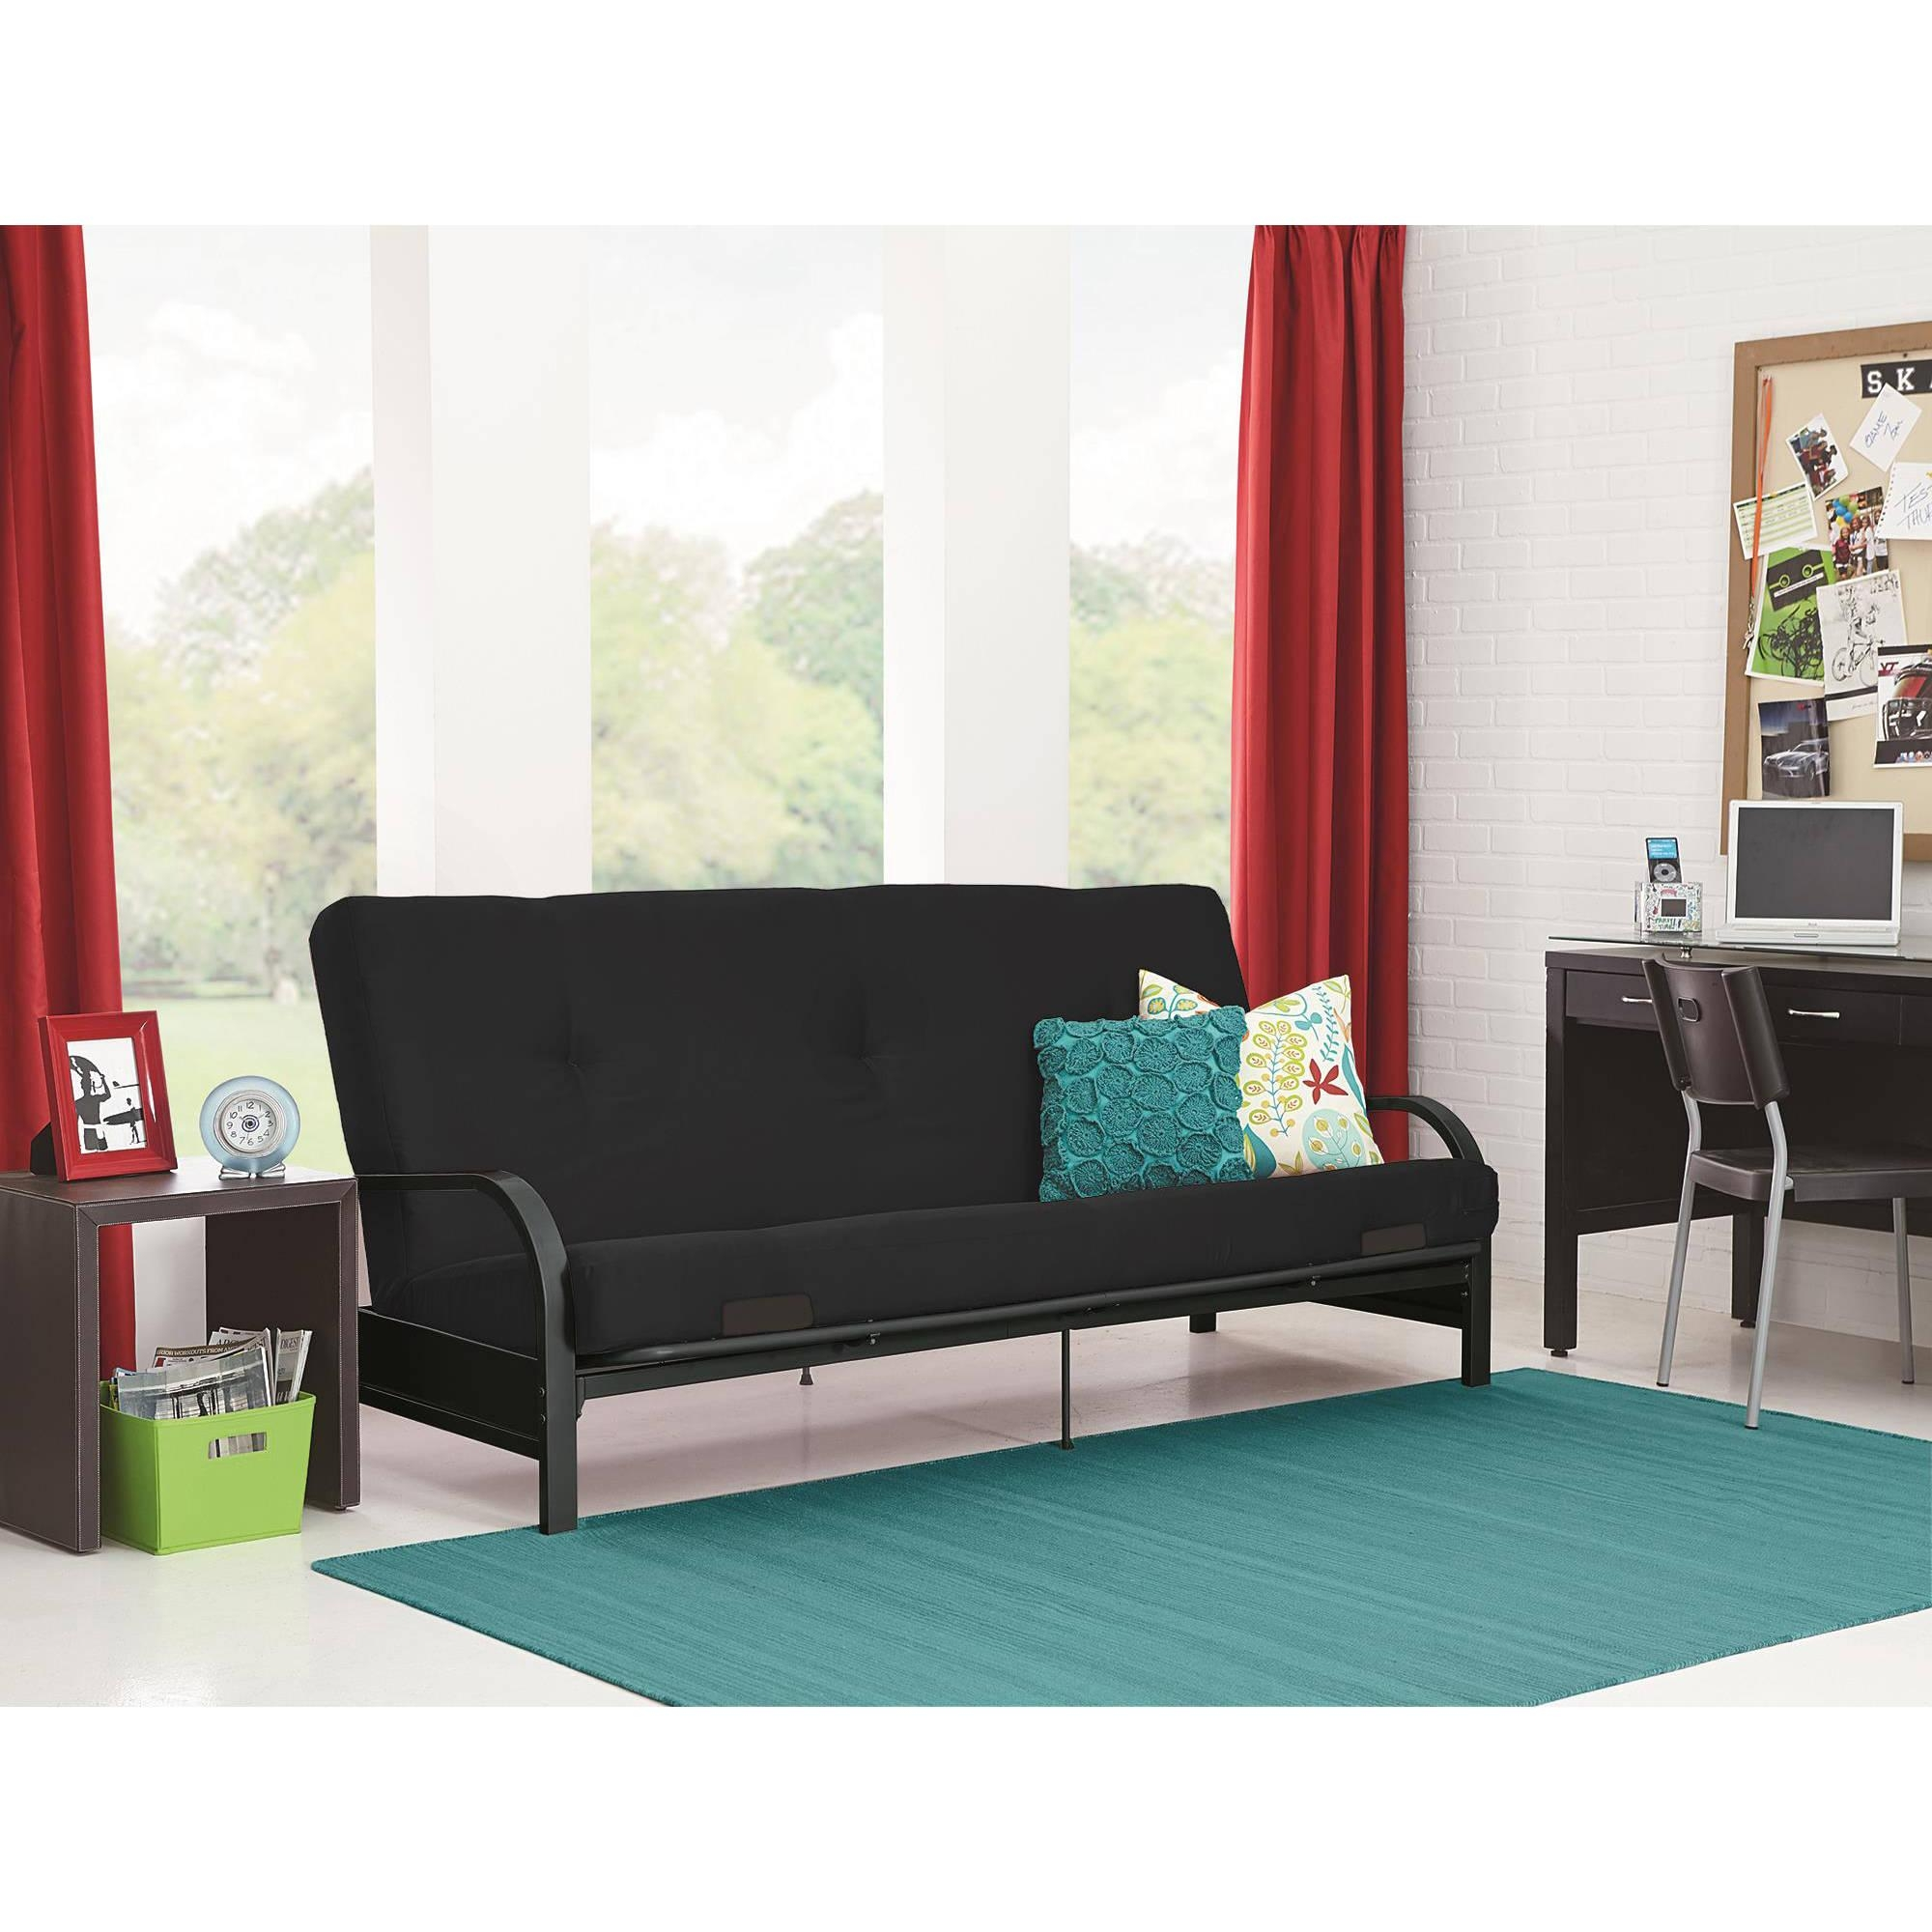 Mainstays Black Metal Arm Futon With Full Size Mattress – Walmart Intended For Mainstay Sofas (Image 10 of 20)